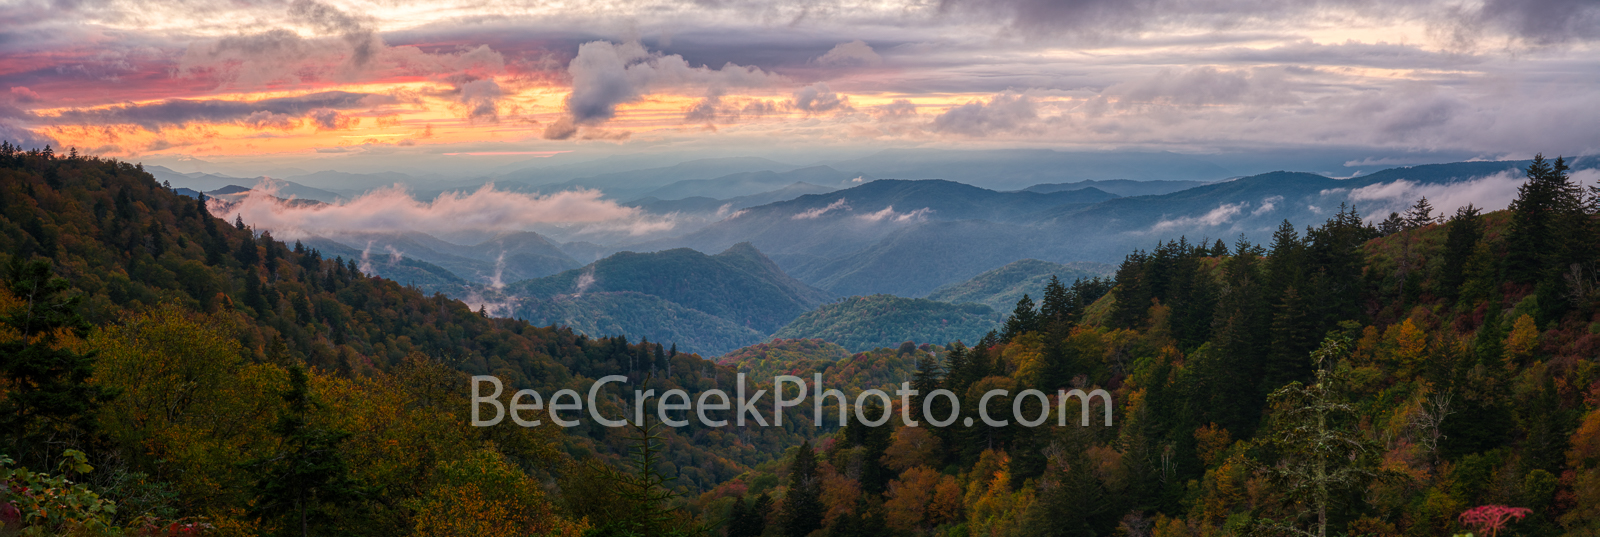 Sunset at Blue Ridge Mountains Pano - Shortly after sunset when colors were still peeking through the clouds you can see the...